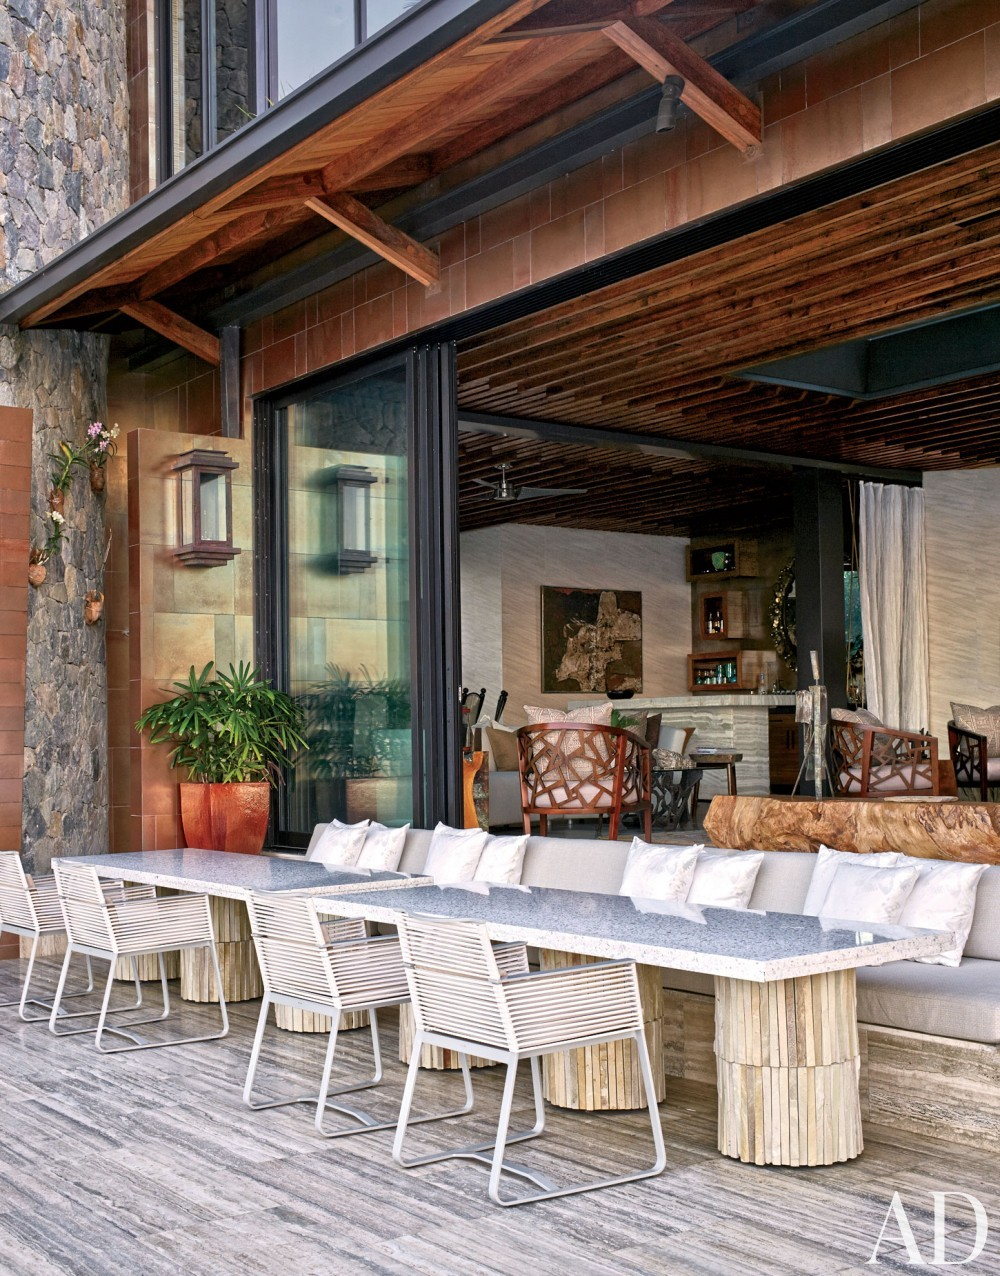 Contemporary Outdoor Space by Tony Ingrao and Randy Kemper in St. John, U.S. Virgin Islands